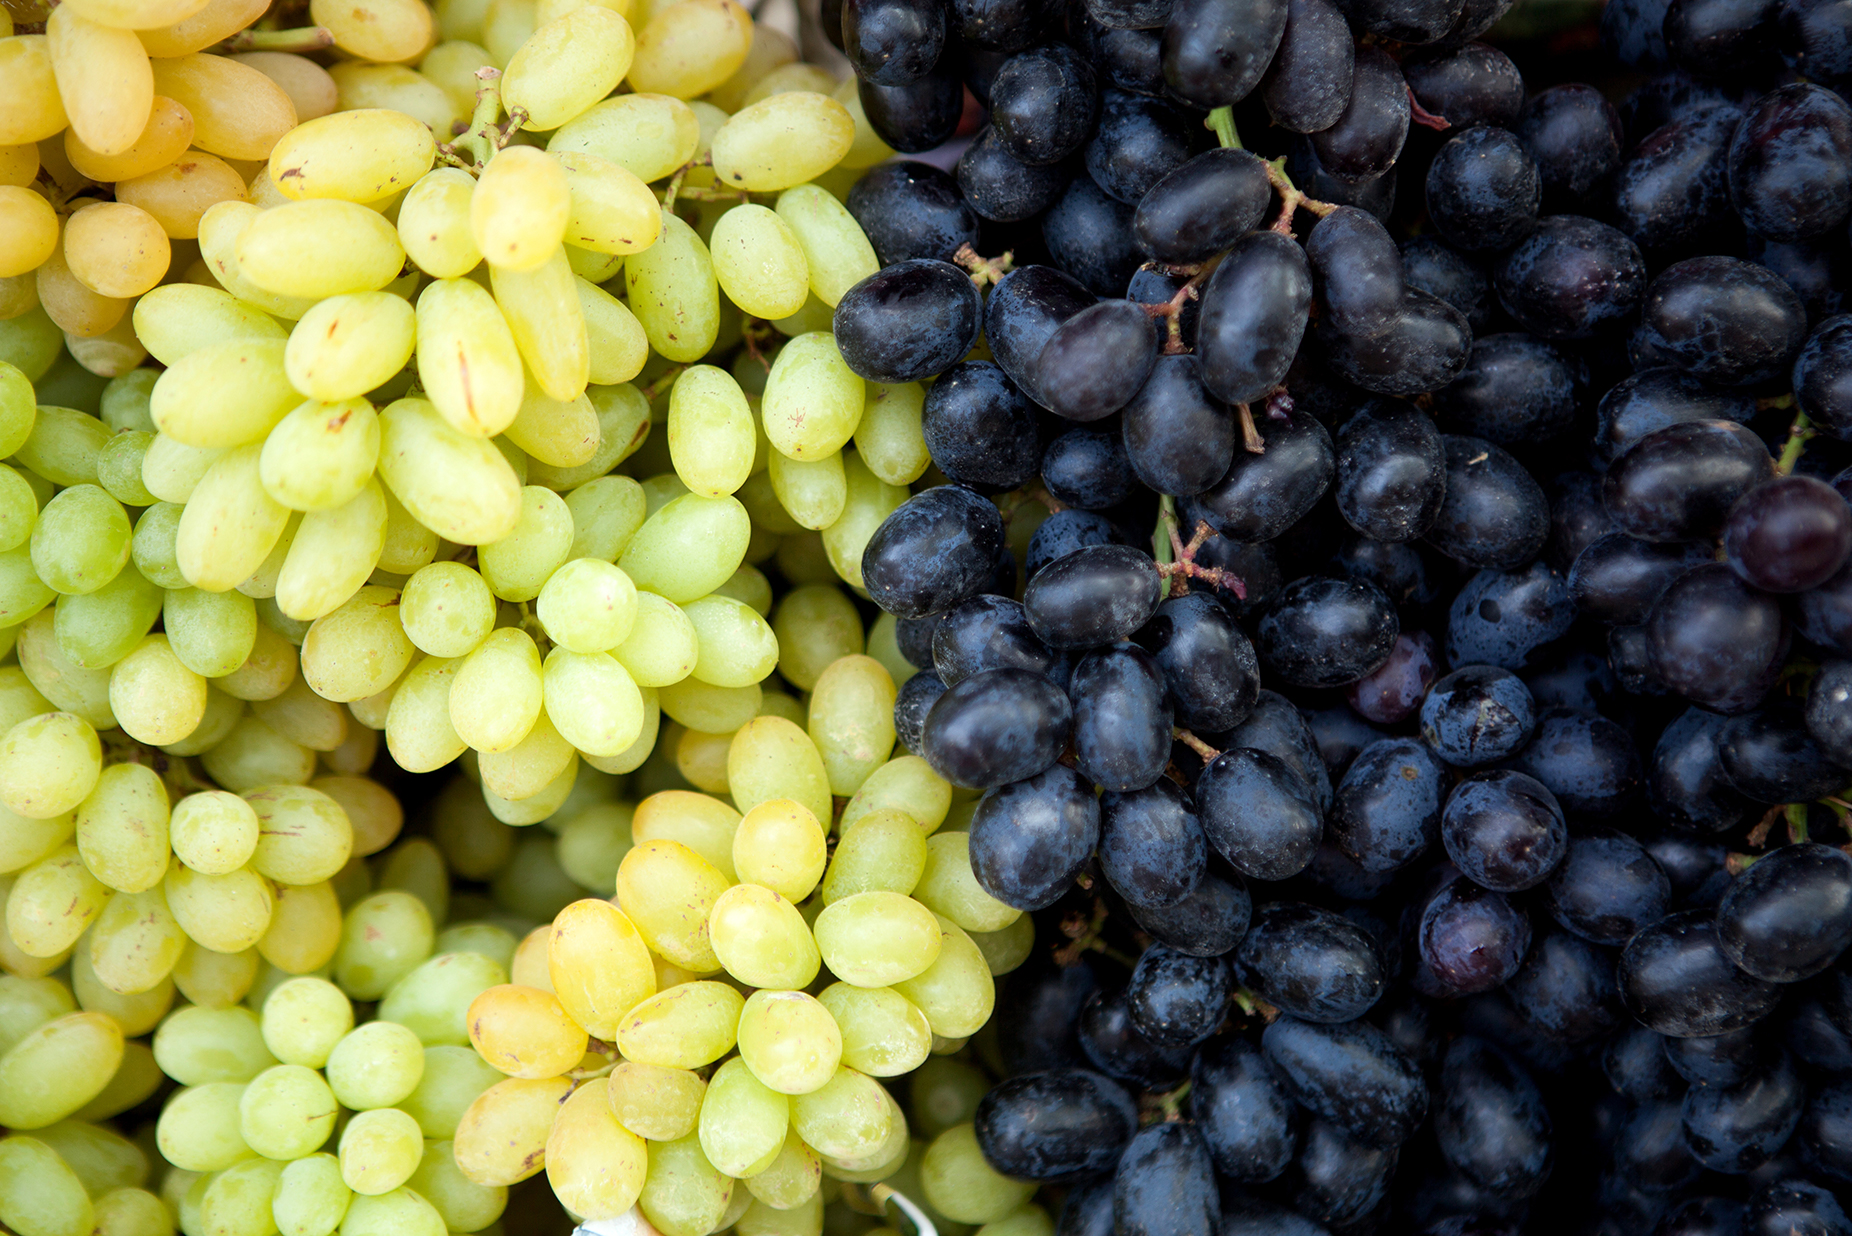 Blanc de Blancs vs Blanc de Noirs grapes